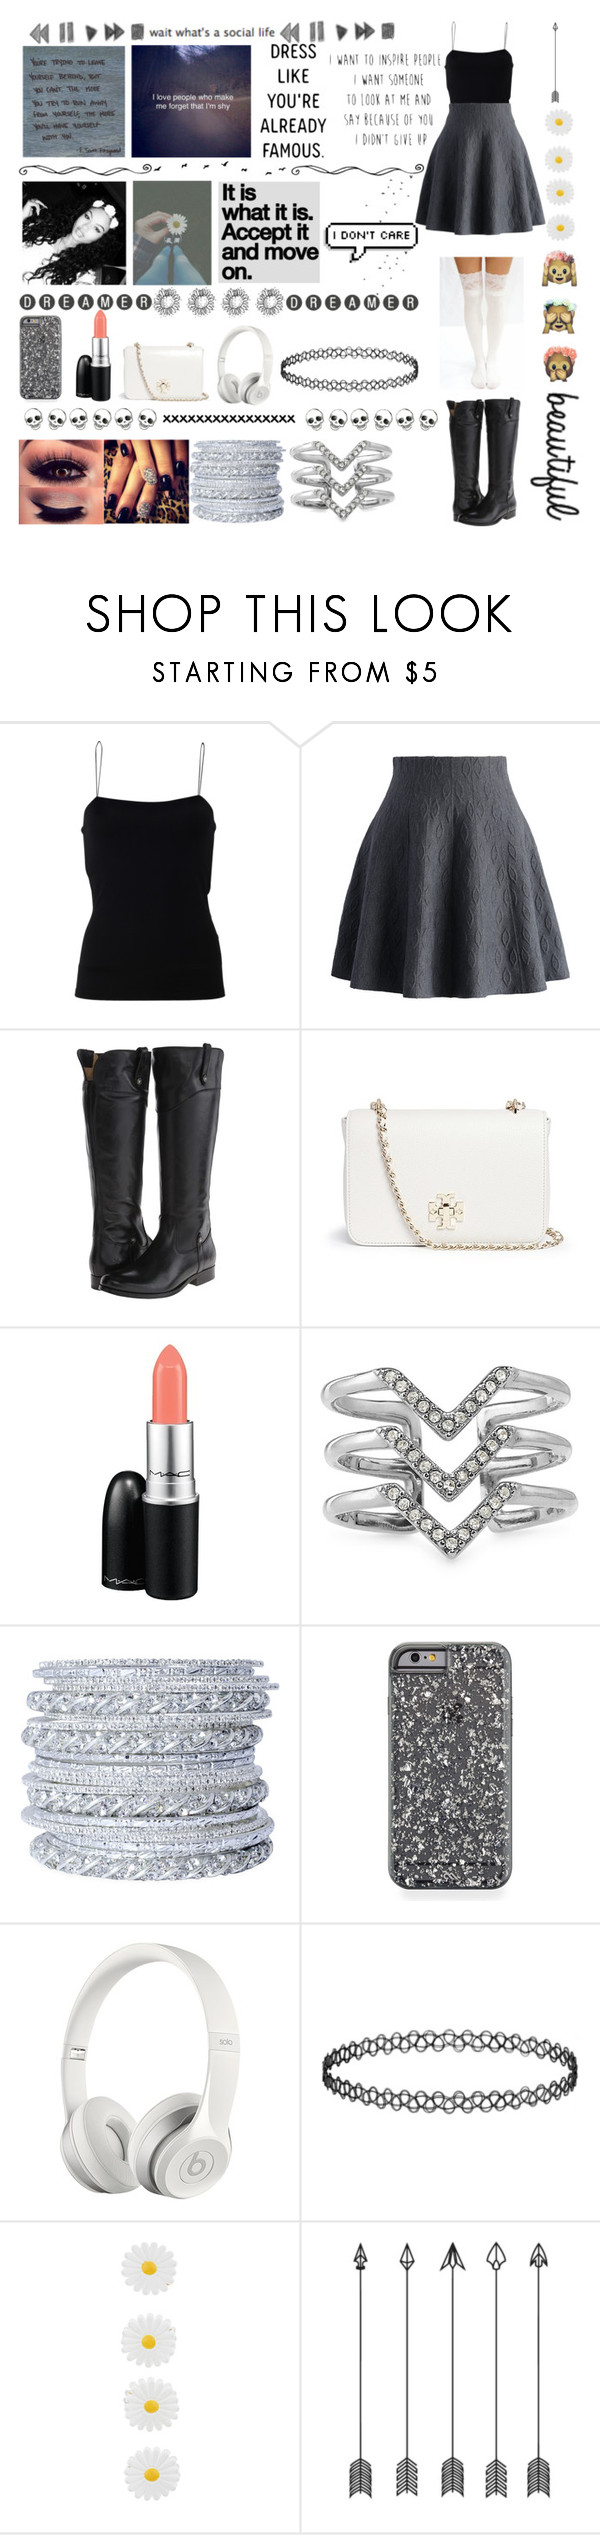 """Random #2"" by merchelsmith ❤ liked on Polyvore featuring мода, T By Alexander Wang, Chicwish, Frye, Tory Burch, MAC Cosmetics, Stella & Dot, Chamak by Priya Kakkar, Beats by Dr. Dre и Accessorize"